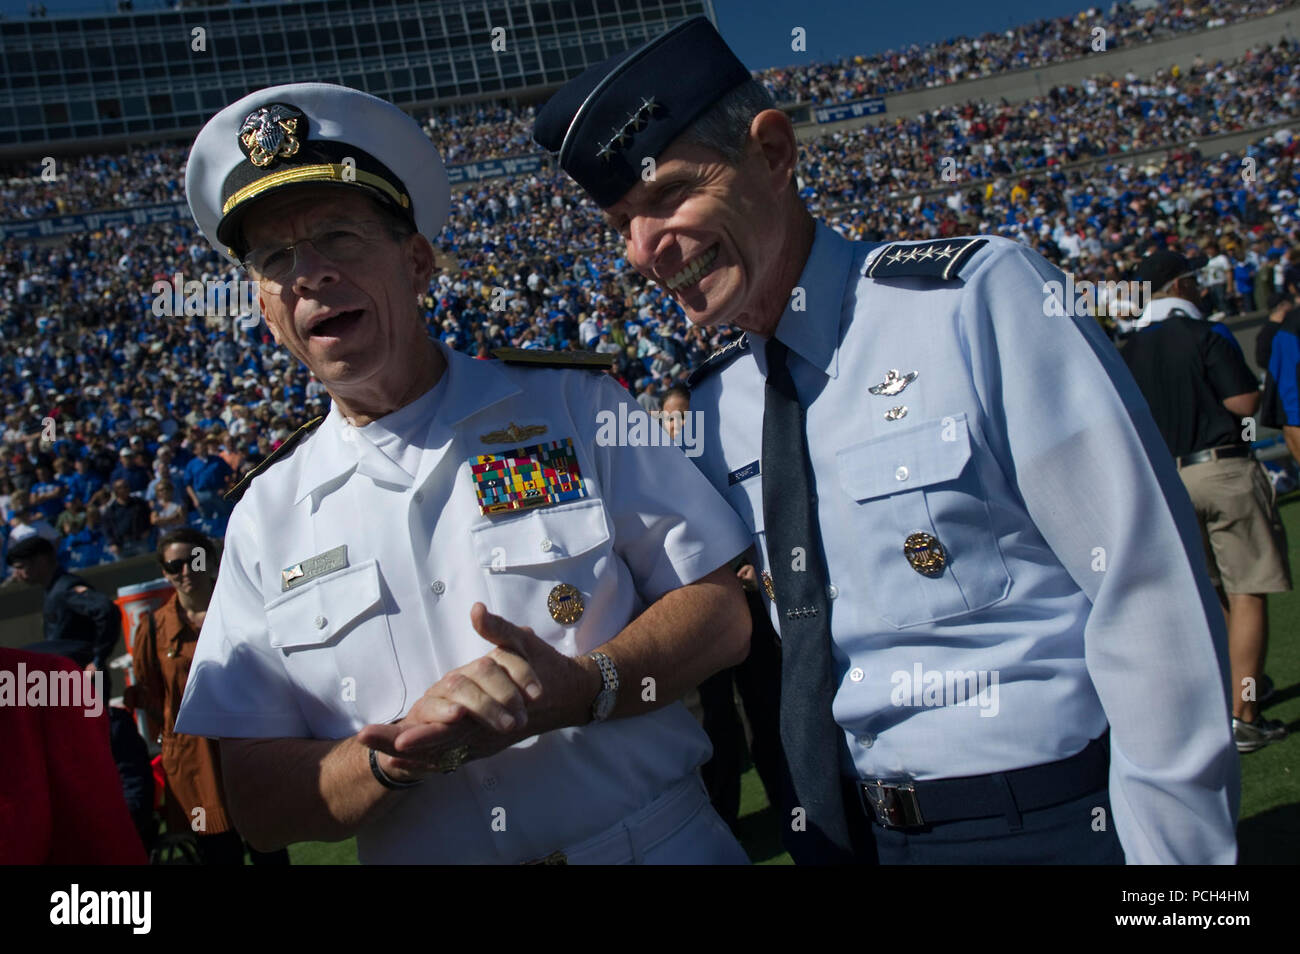 Chairman of the Joint Chiefs of Staff Adm. Mike Mullen, left, and U.S. Air Force Gen. Norton A. Schwartz, chief of staff, U.S. Air Force, meet on the Falcon Stadium field prior to kickoff of the U.S. Air Force Academy Falcons versus the U.S Naval Academy Midshipmen football game in Colorado Springs, Colo. The Falcons defeated the Midshipmen 14-6. Stock Photo